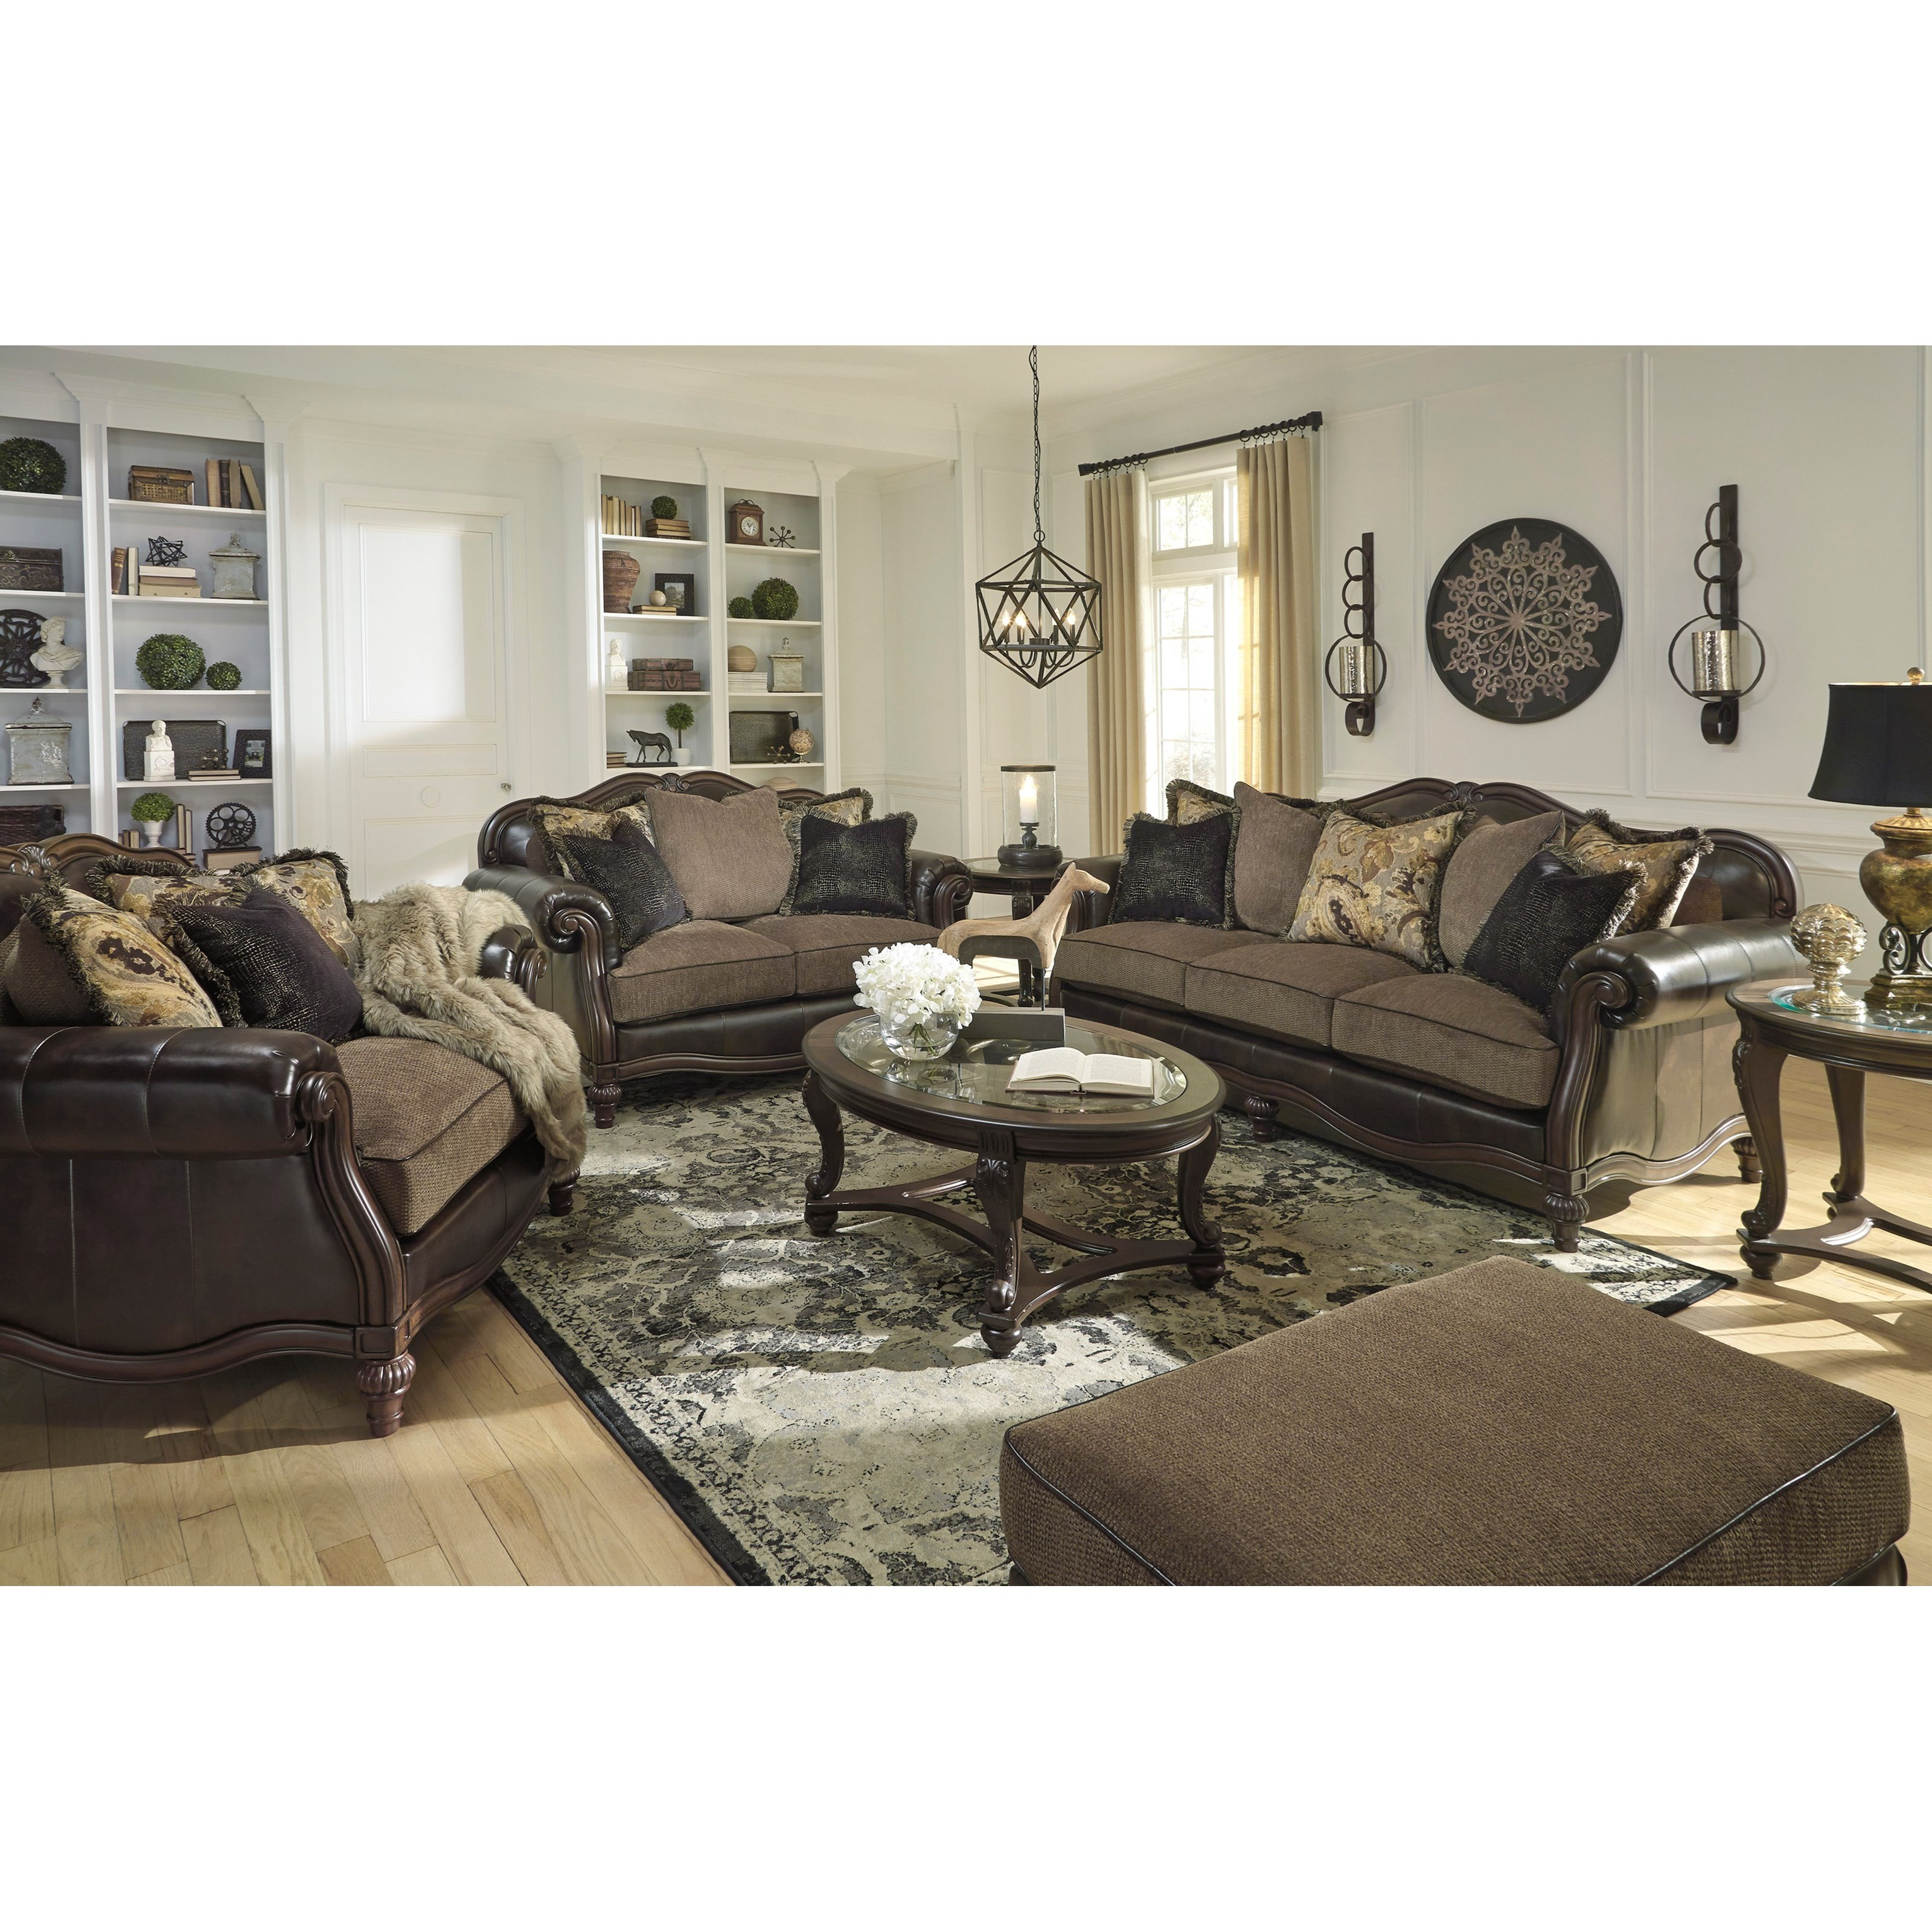 Signature Design By Ashley Winnsboro DuraBlend Stationary Living Room Group